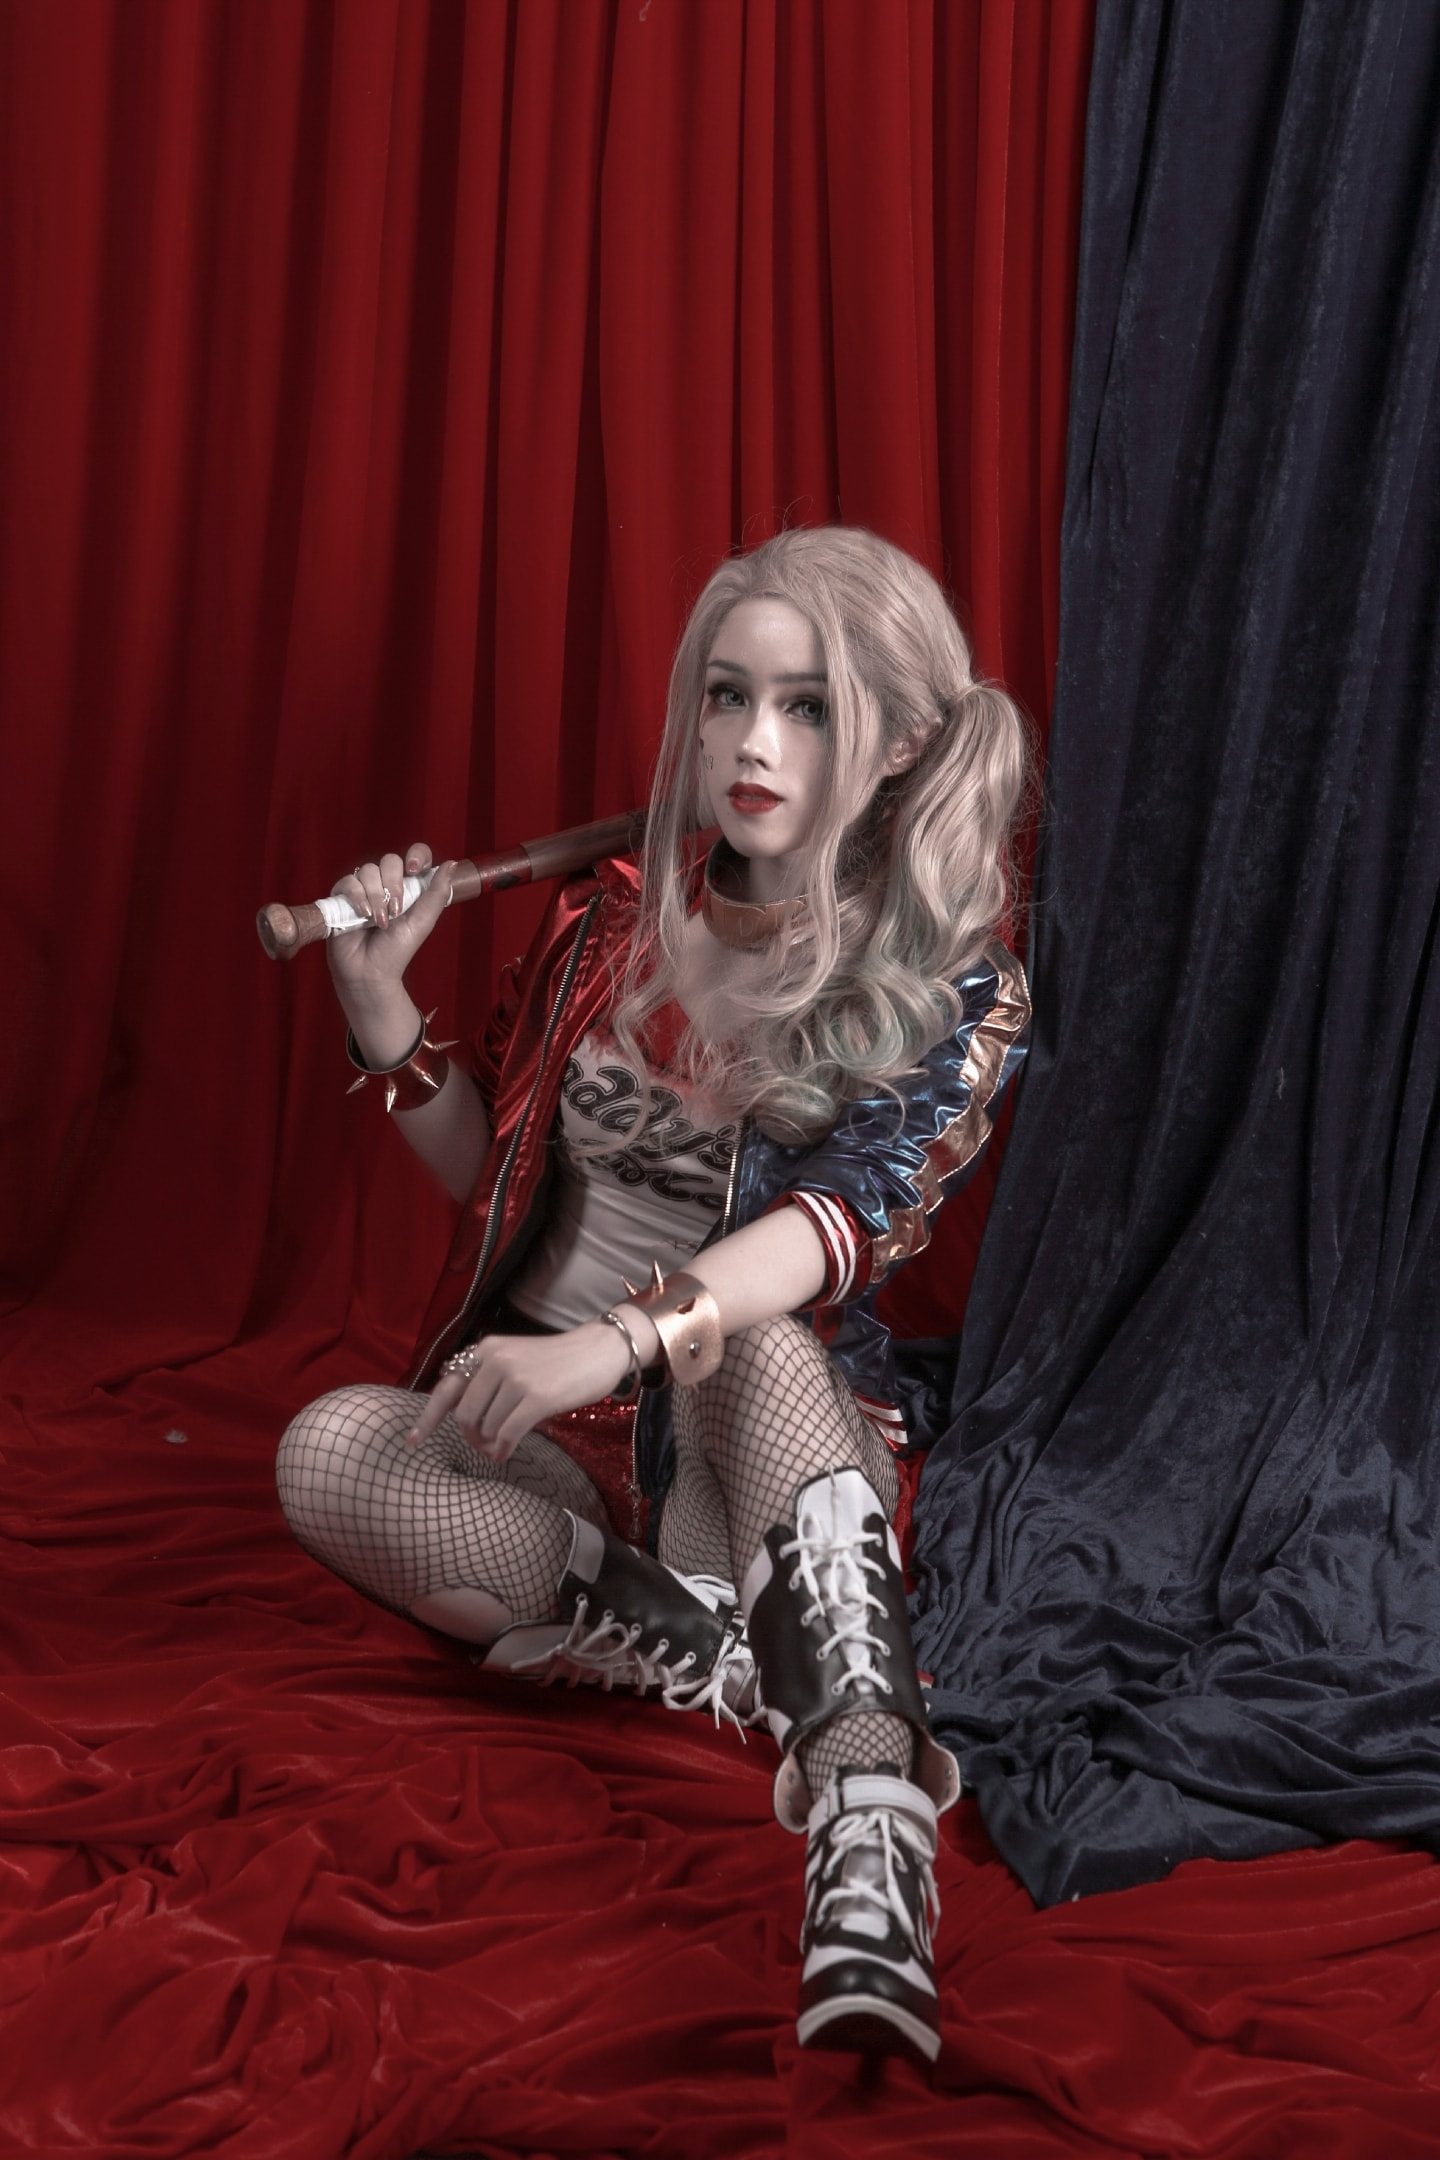 Harley Quinn哈莉奎茵小丑女cosplay